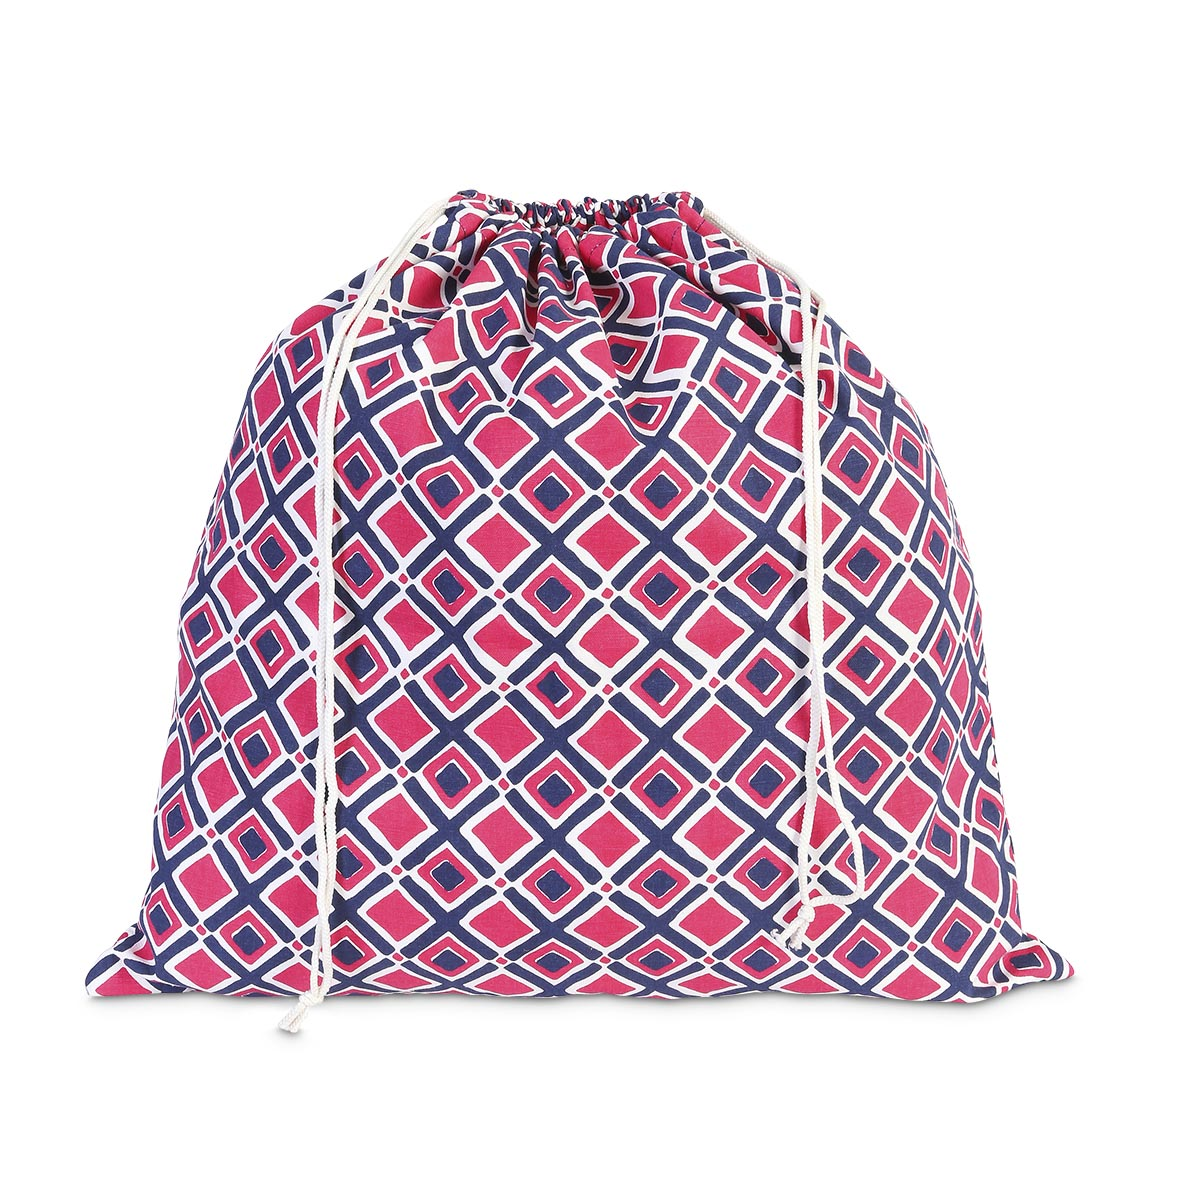 times square navy/pink laundry bag